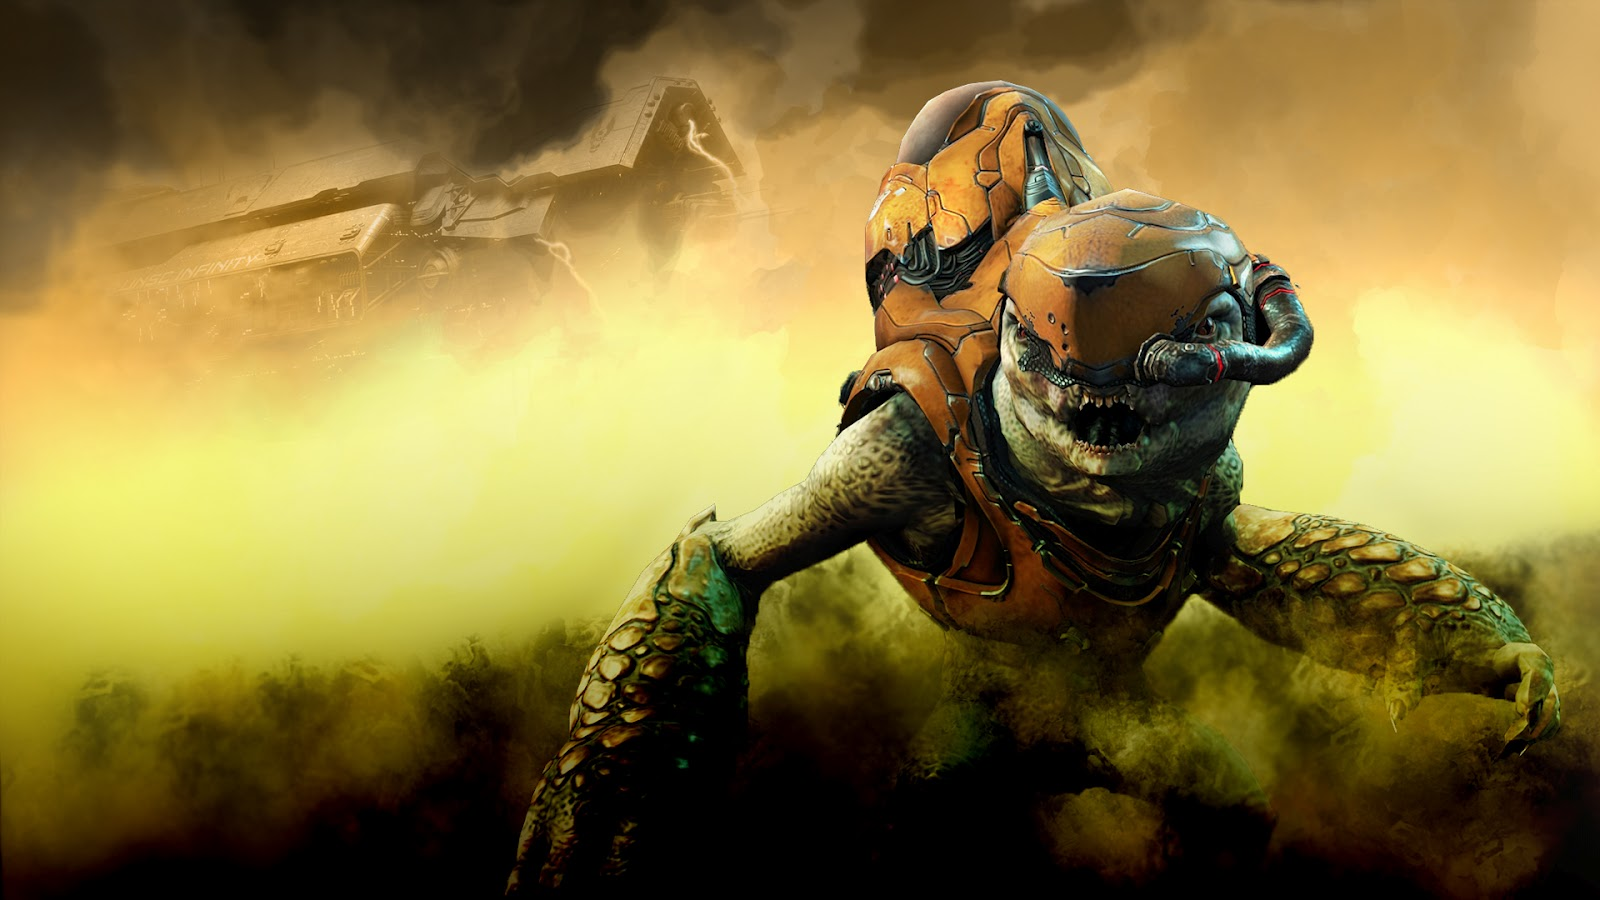 Halo 4 Anyone? A Collection of Halo 4 Wall Papers | C Town Gaming